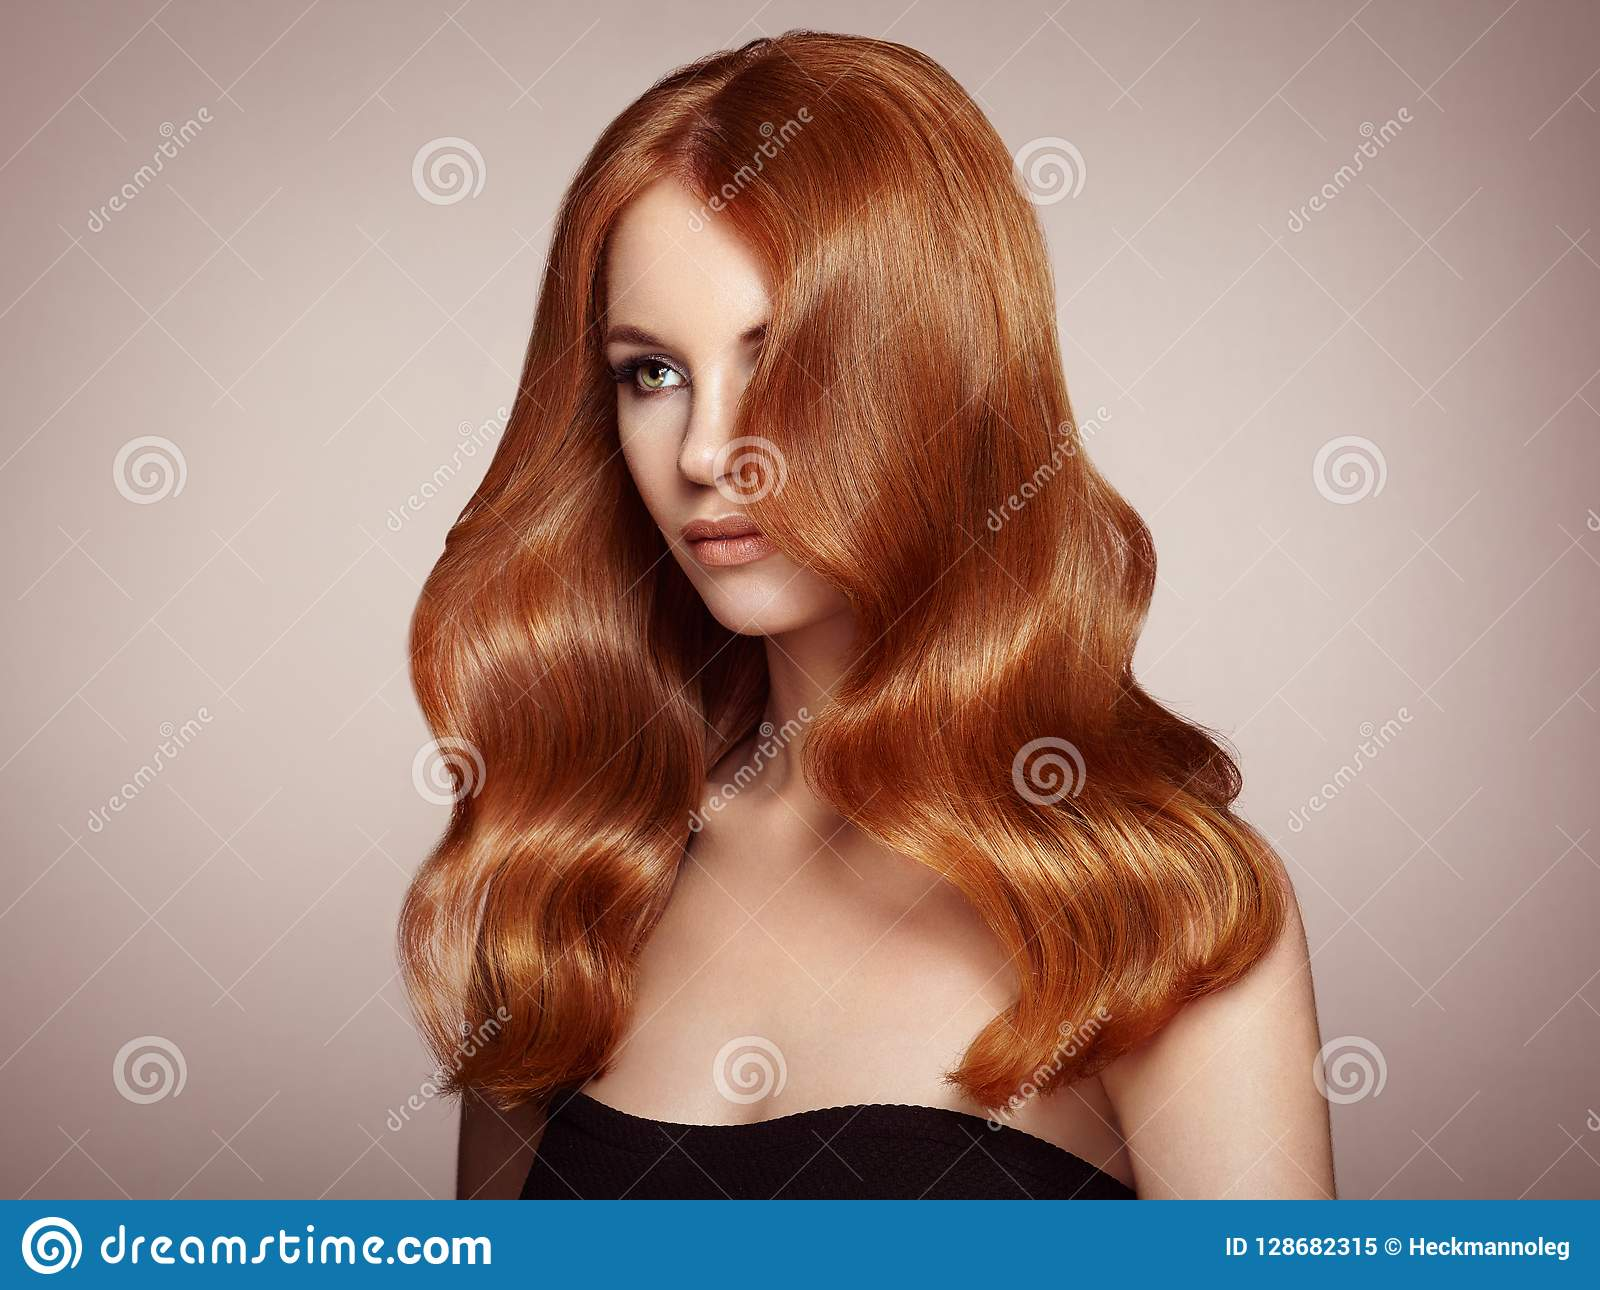 Understood redhead hair care have